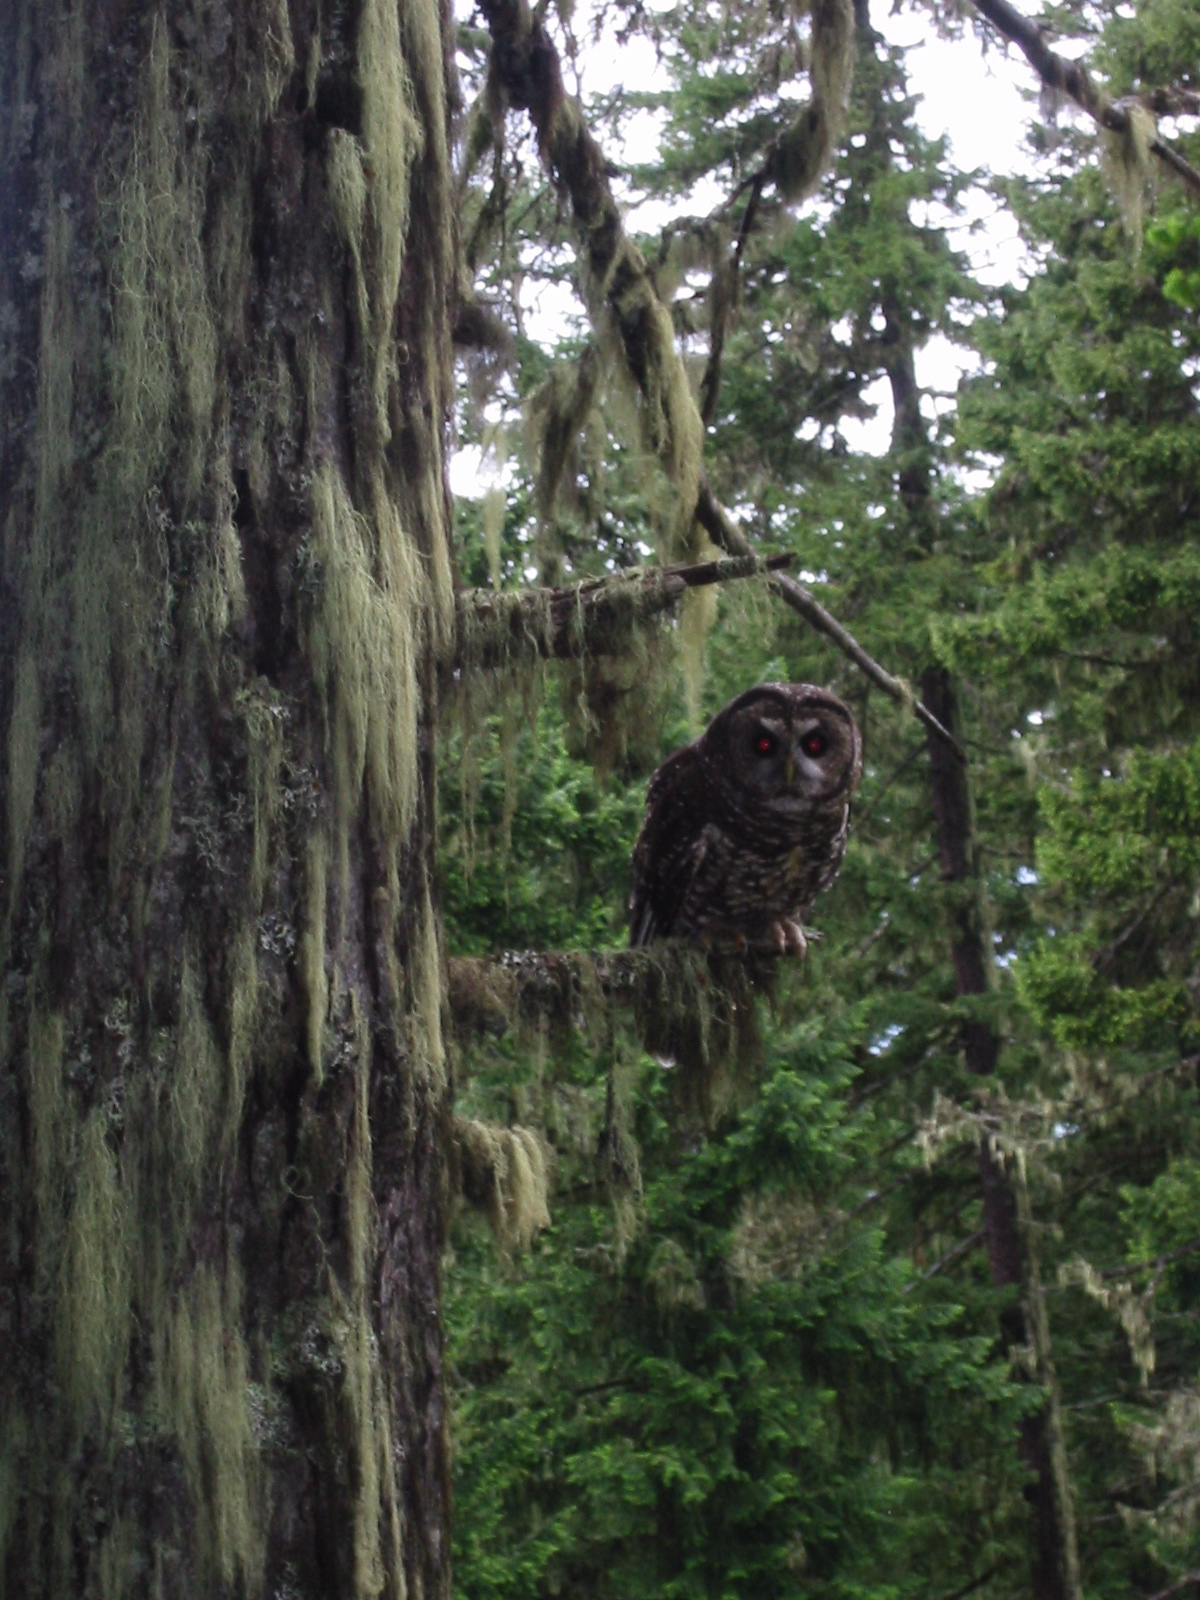 A Northern Spotted Owl female in the North Cascades, 2006. Sometimes birding mania takes hold and I skip work to accompany a friend doing owl surveys, which is how I saw this beauty.